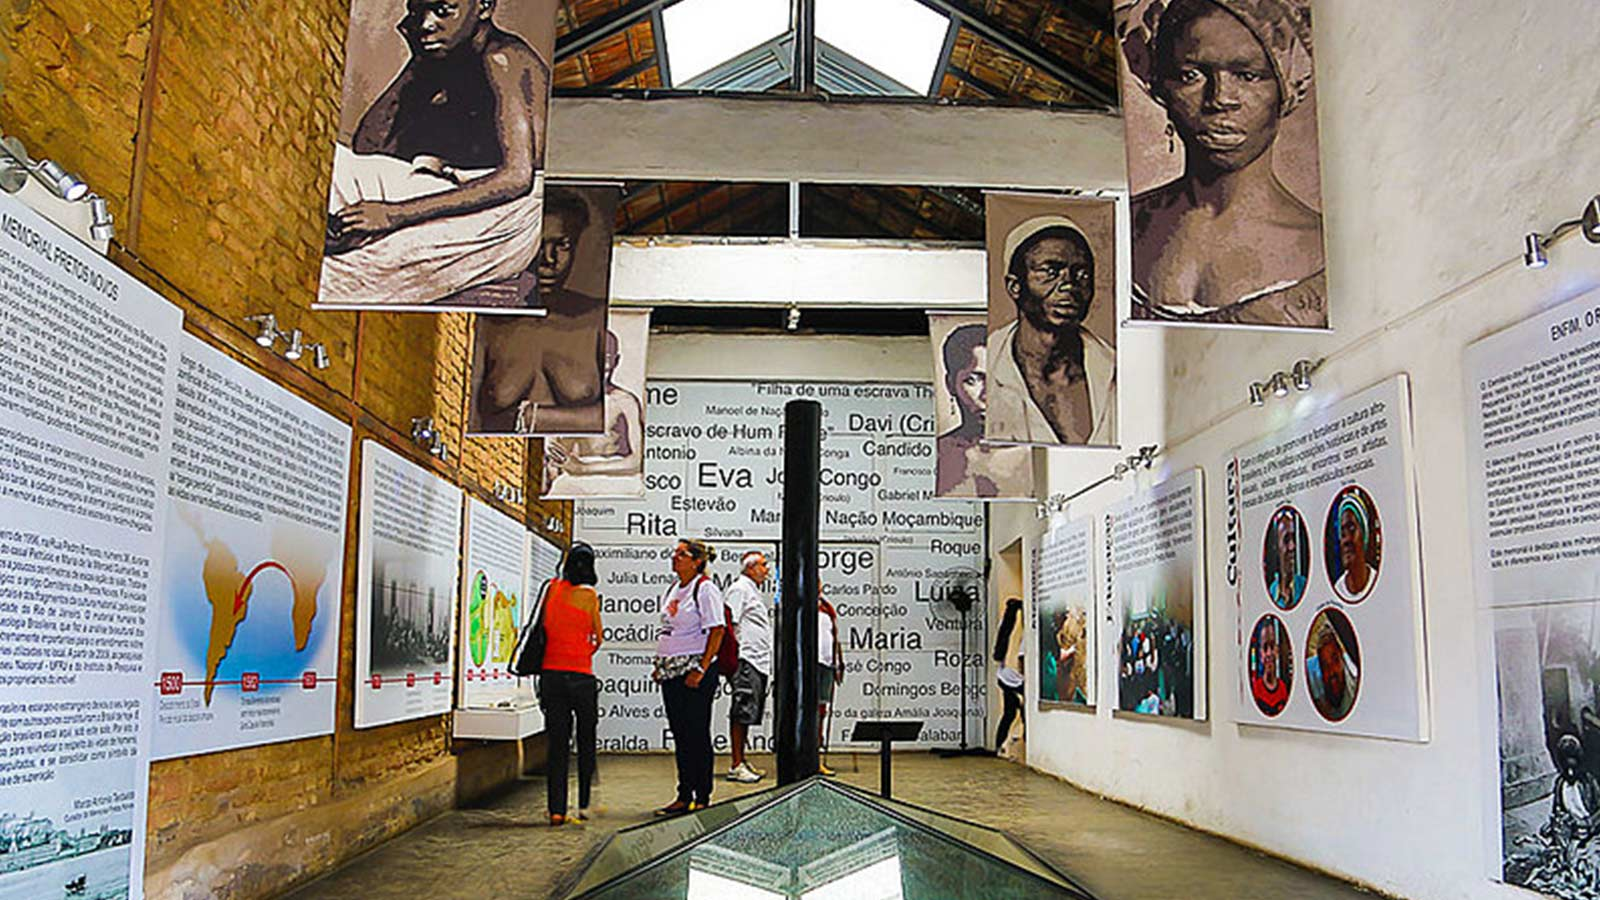 Cemetery for enslaved Africans in Brazil discovered, turned into museum